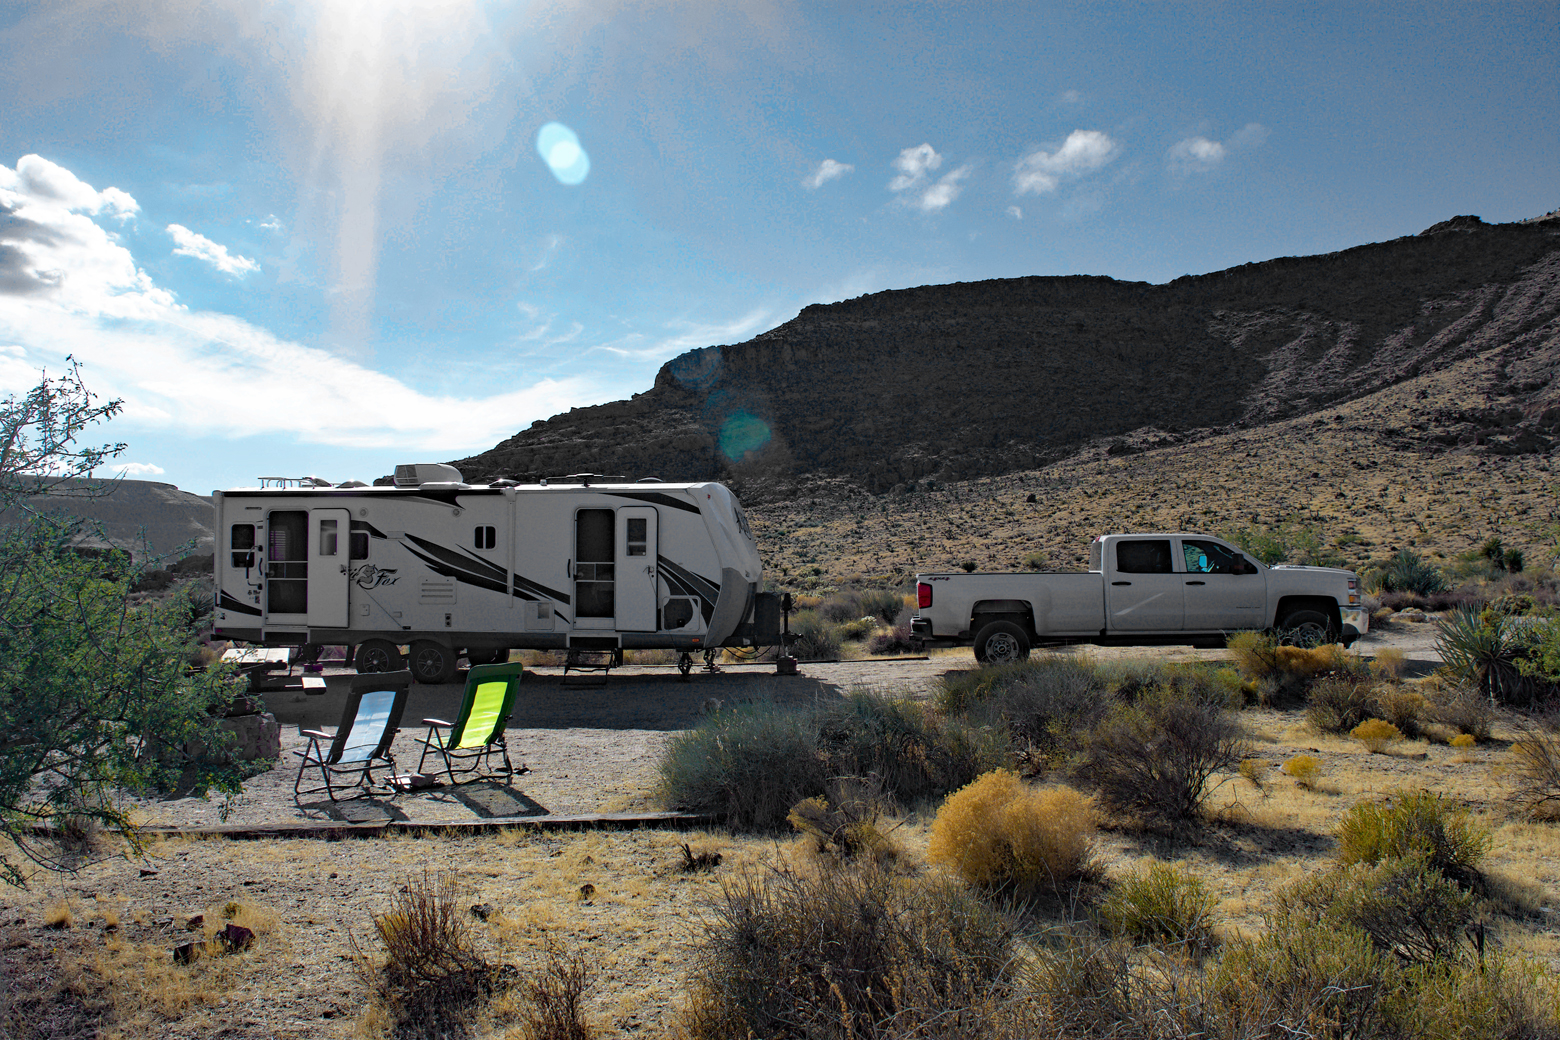 Our truck, trailer, and camping chairs in our campsite at Hole-in-the-Wall Campground